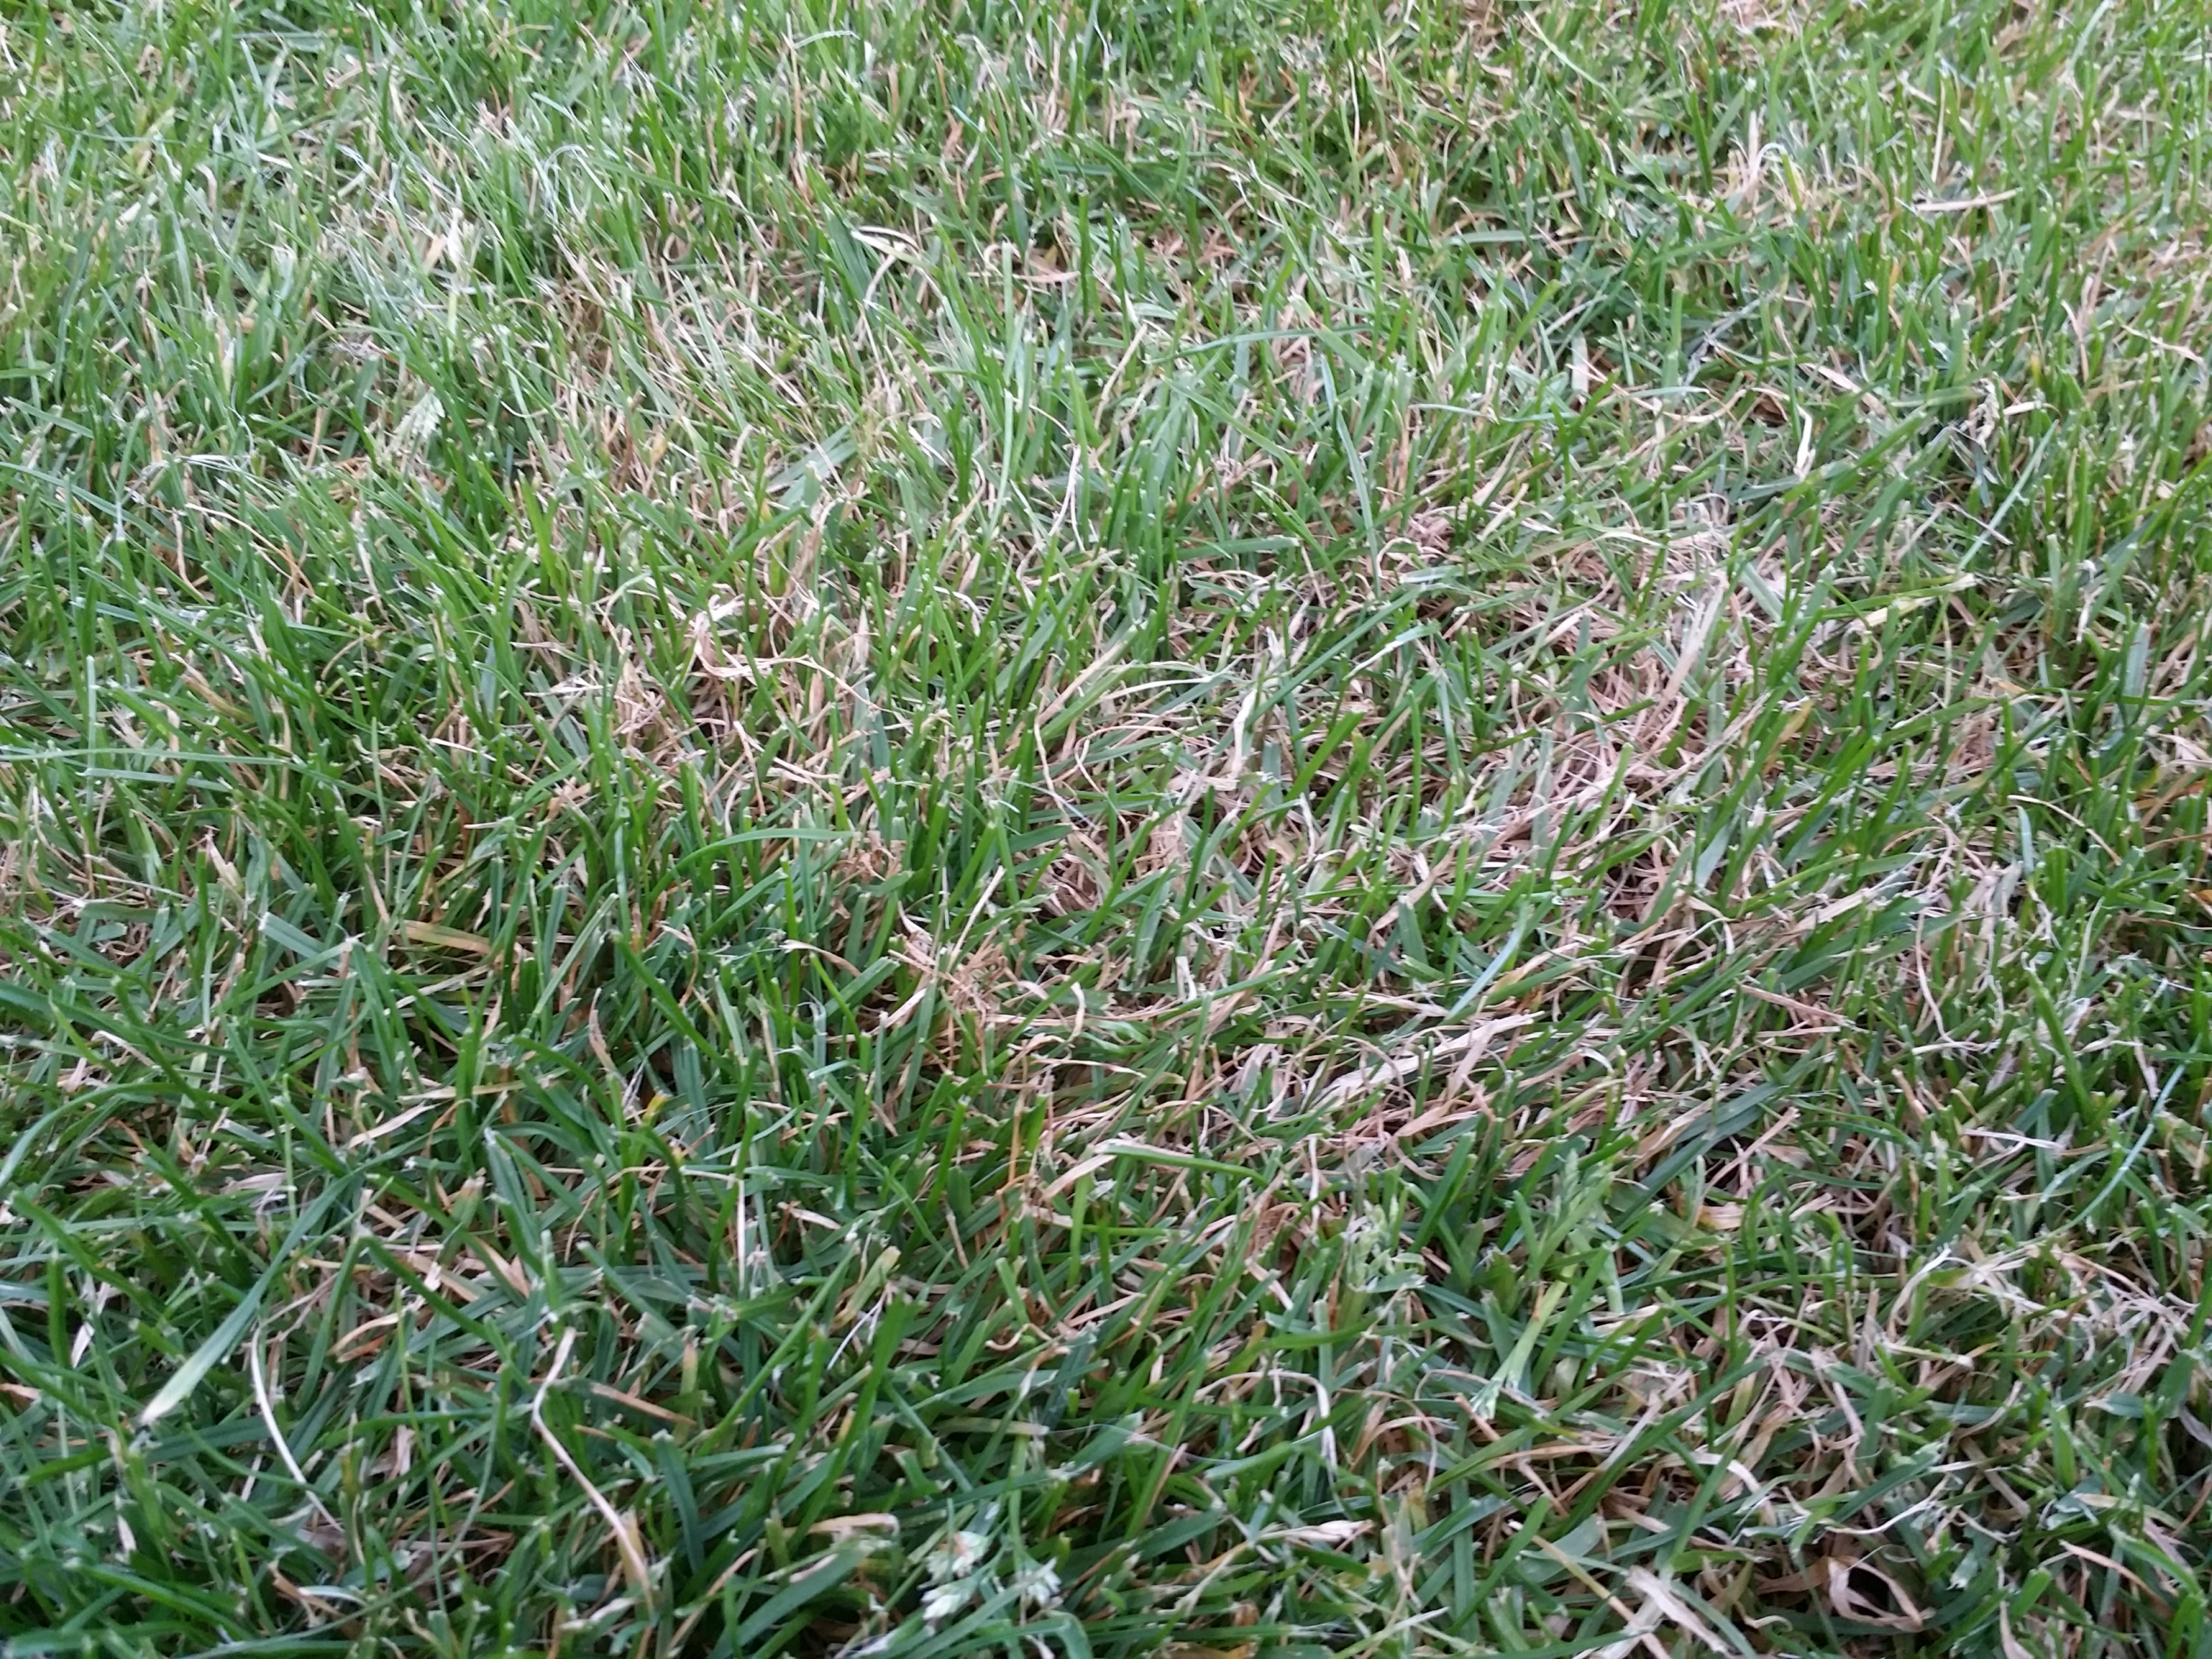 New grass turning straw-like - zoomed in